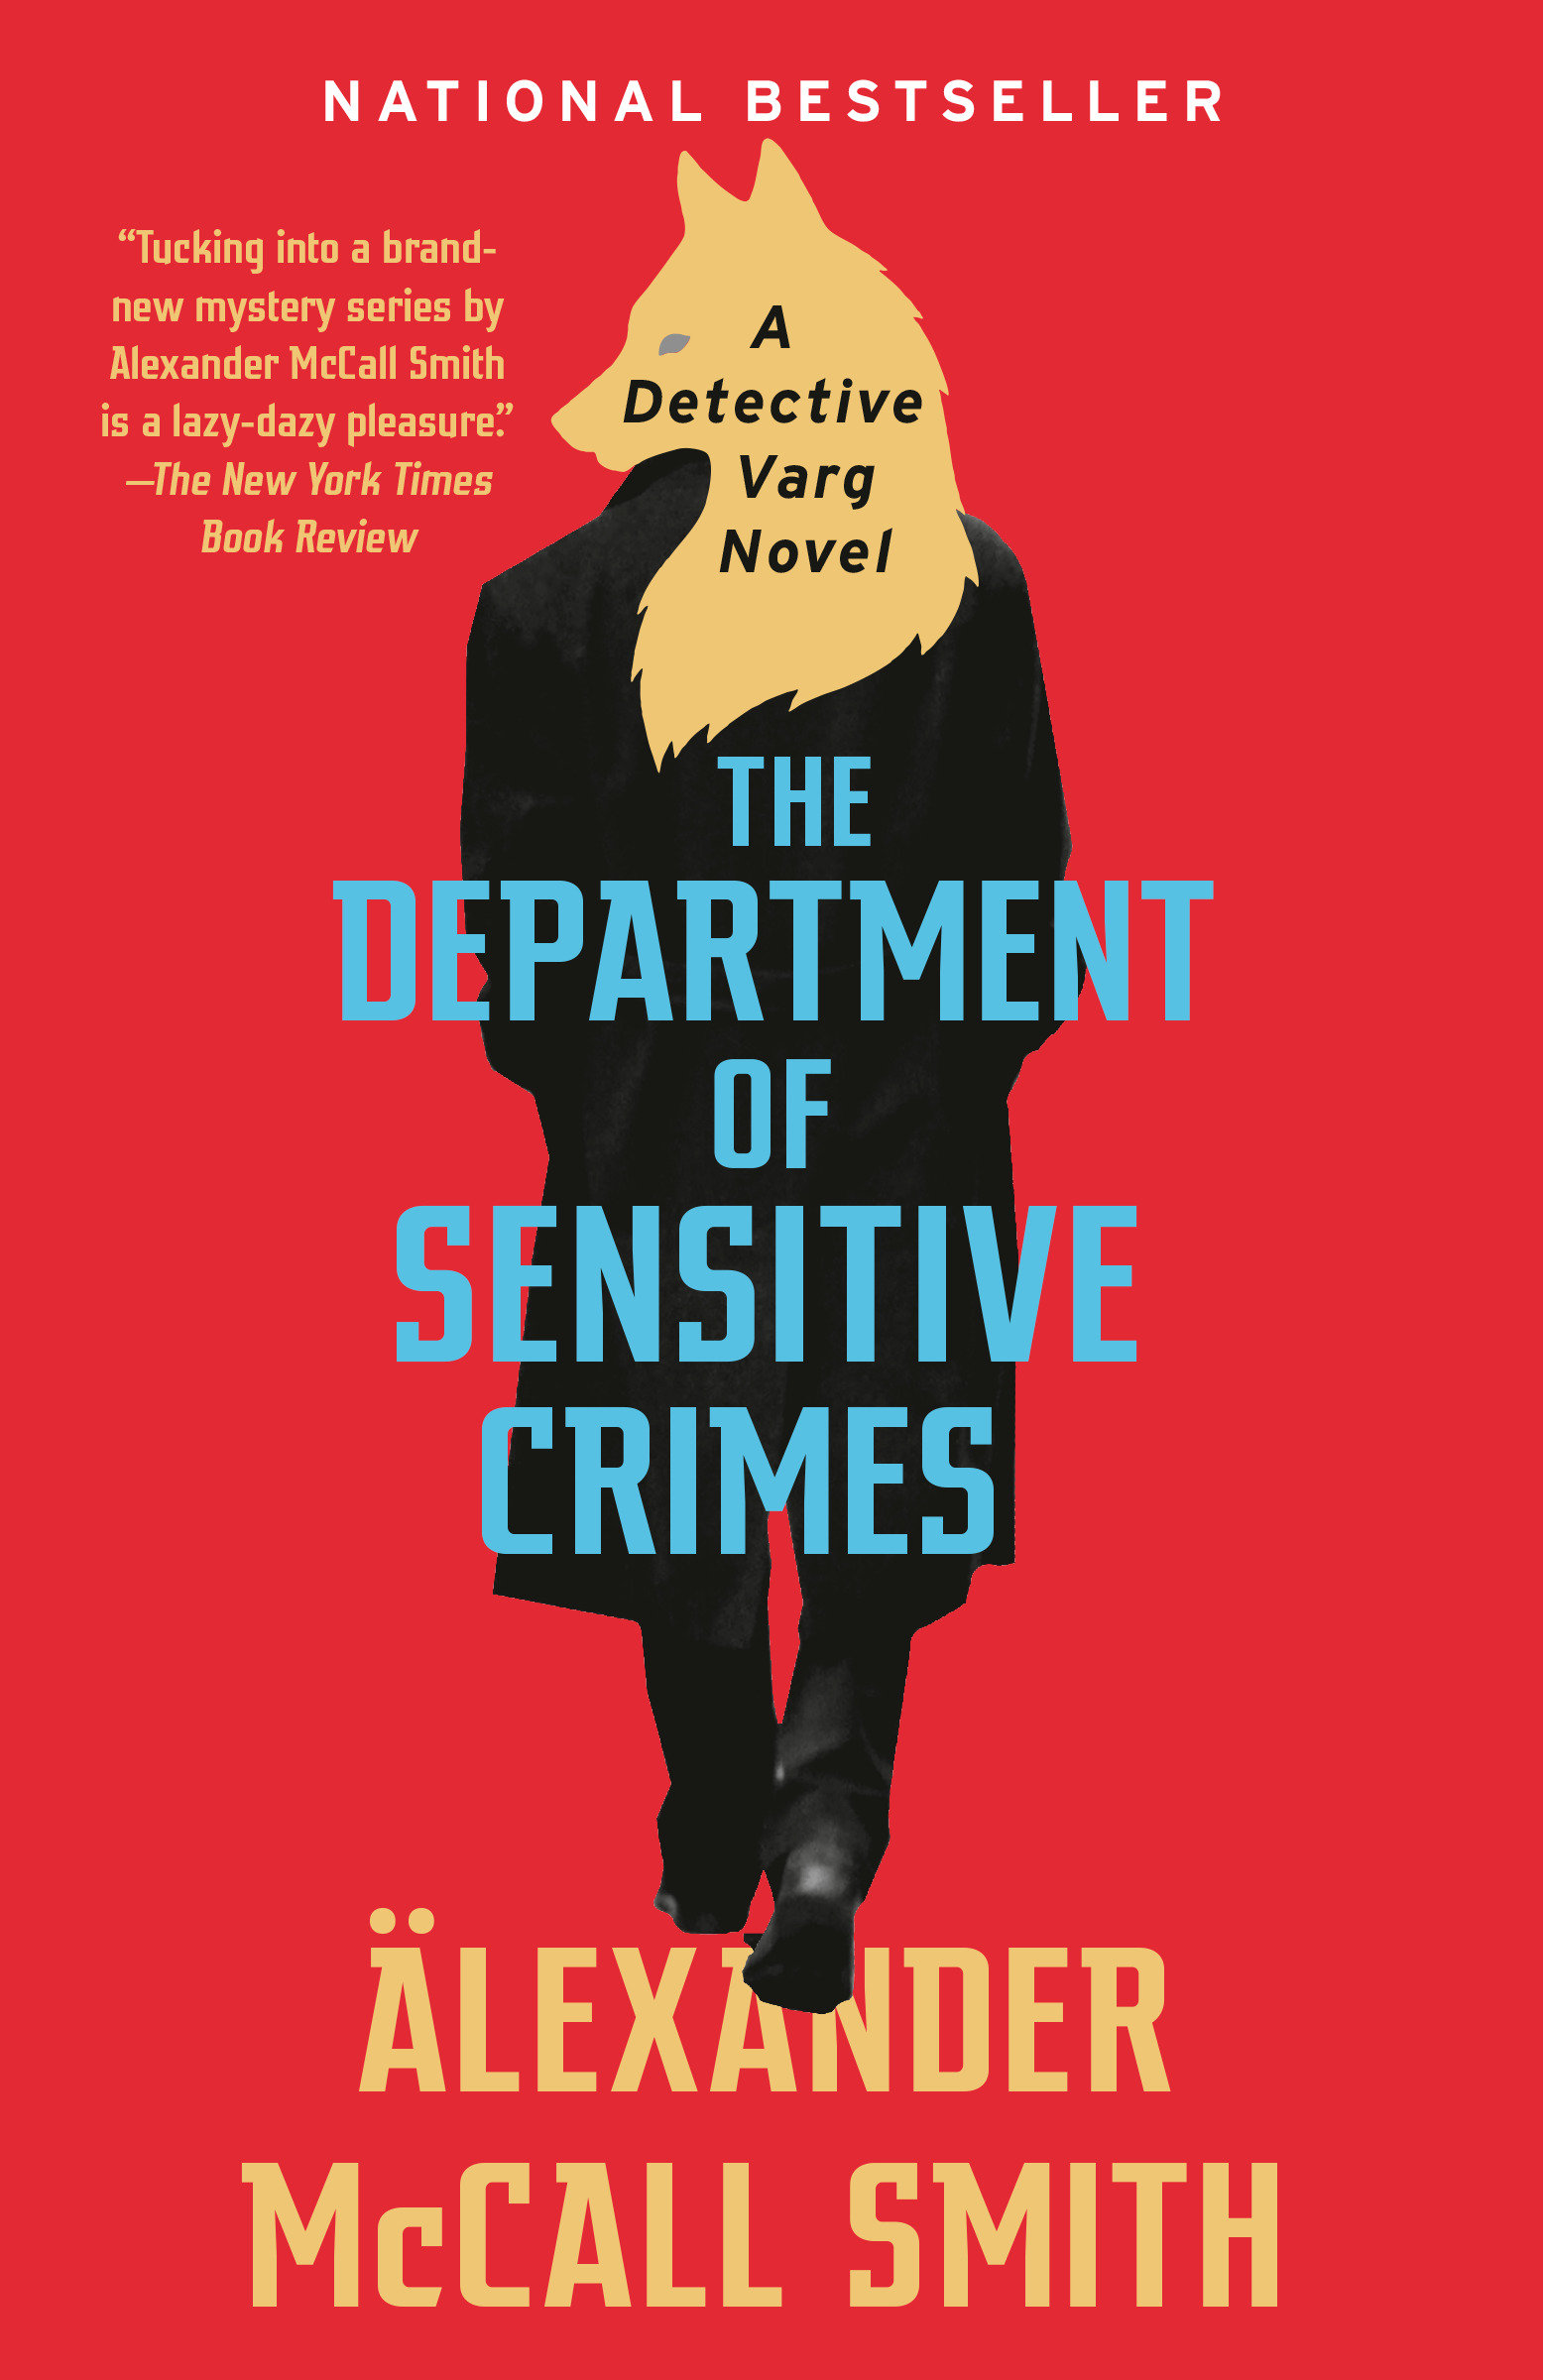 The Department of Sensitive Crimes [electronic resource] : A Detective Varg Novel